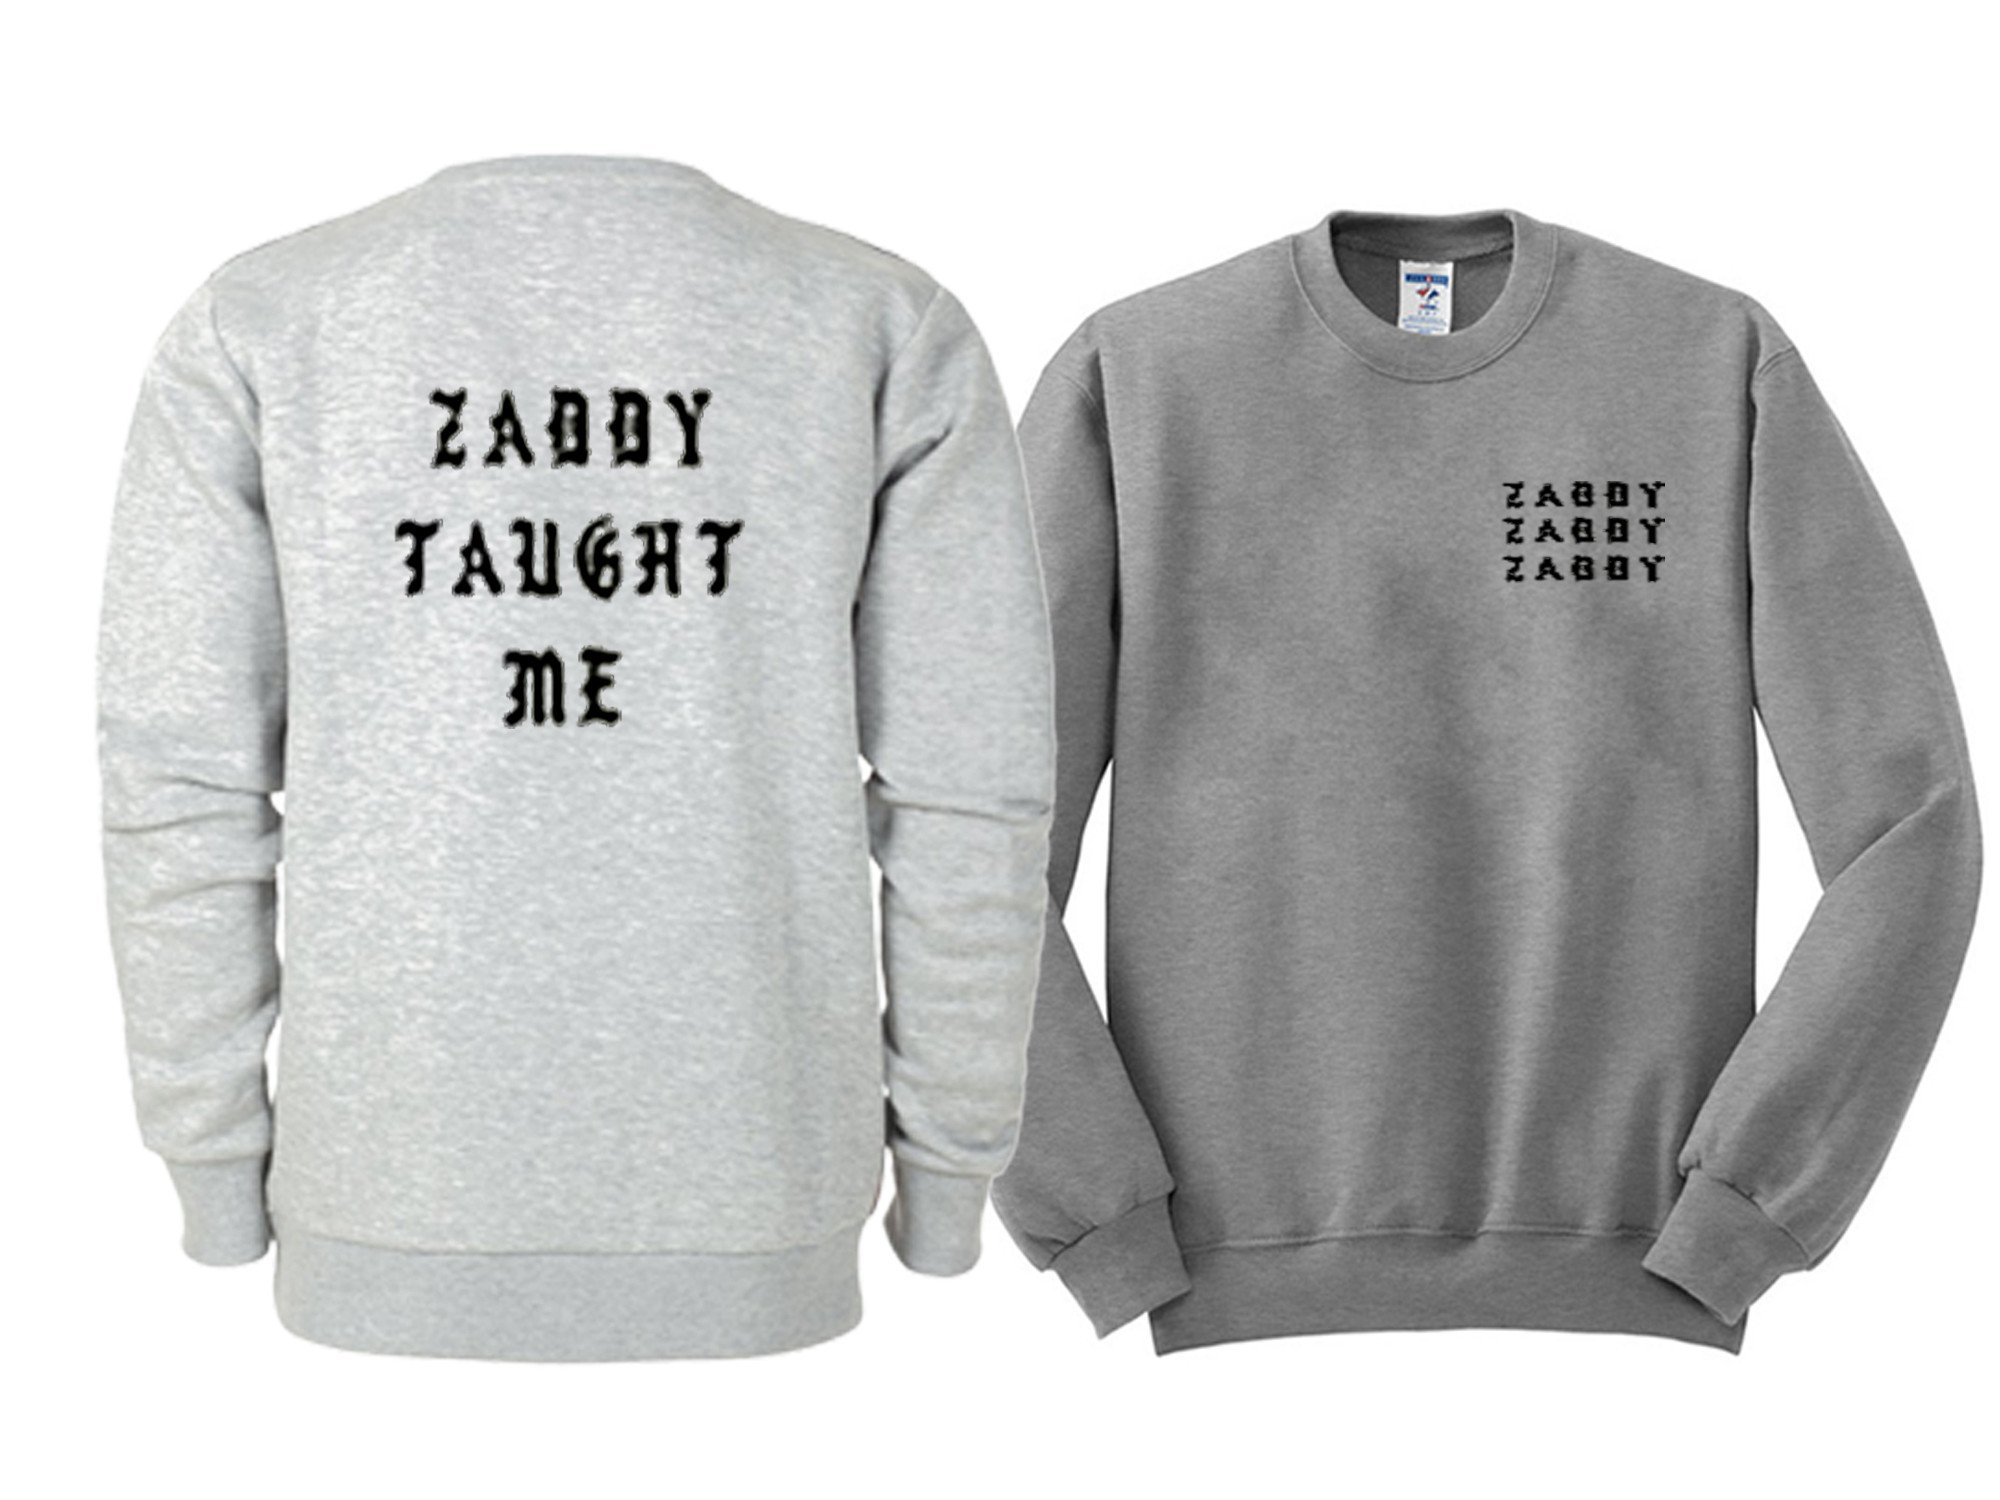 zaddy taught me Sweatshirts twoside